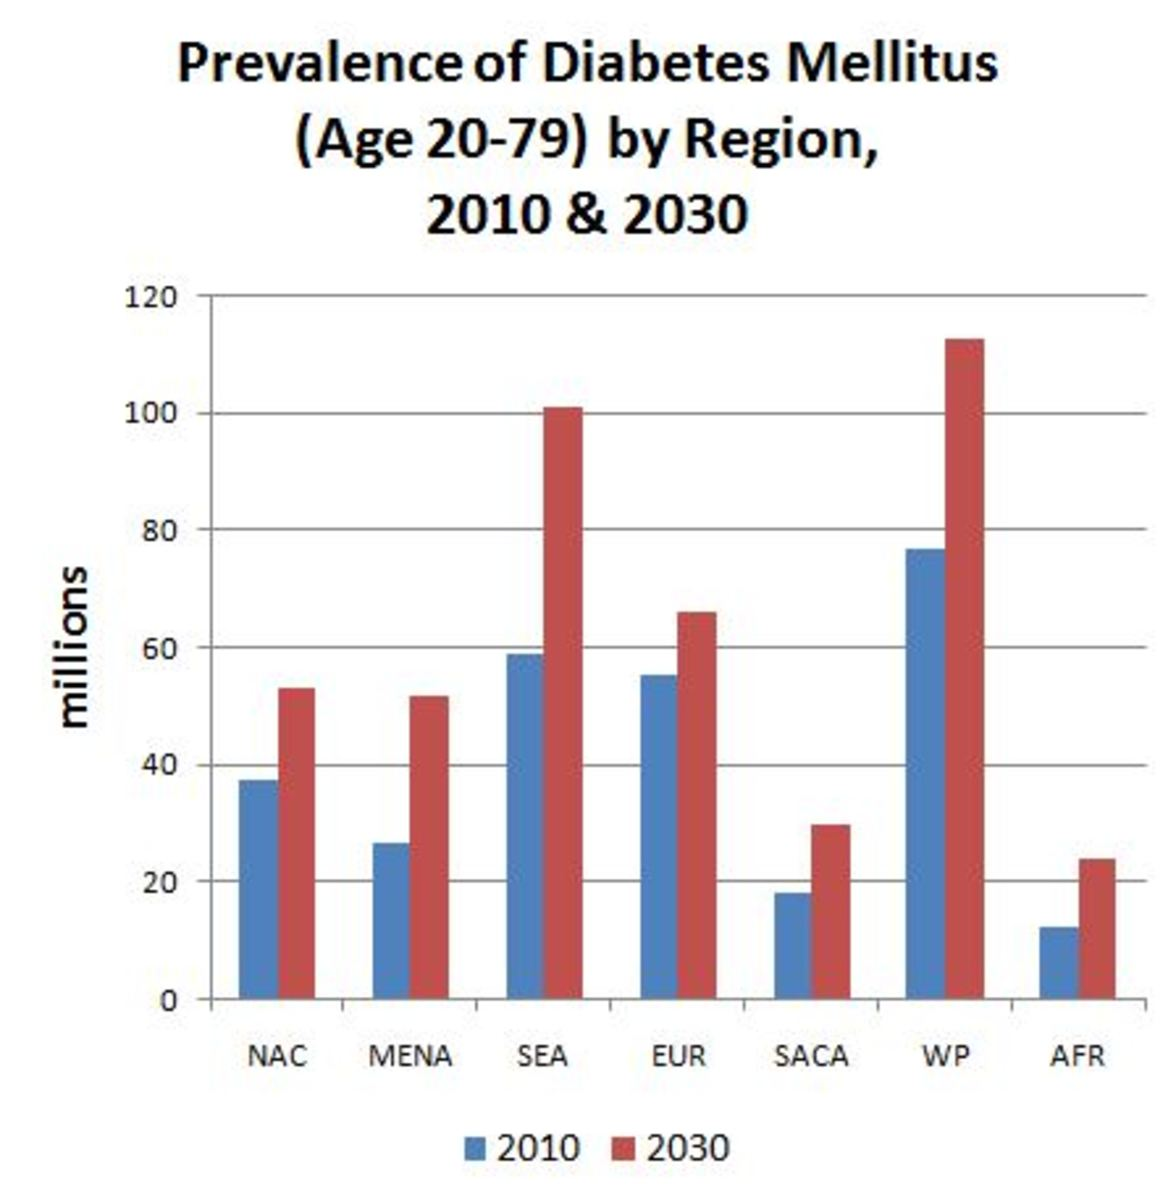 Prevalence of DM by region in 2010 and 2030  NAC-North Am.&Carrib.,MENA-MiddleEast & No. Afr, SACA-So.& Central Am., AFR-Africa, SEA-So. East Asia.,WP-Western Pacific, EUR-Europe Source: WHO, September 2011.